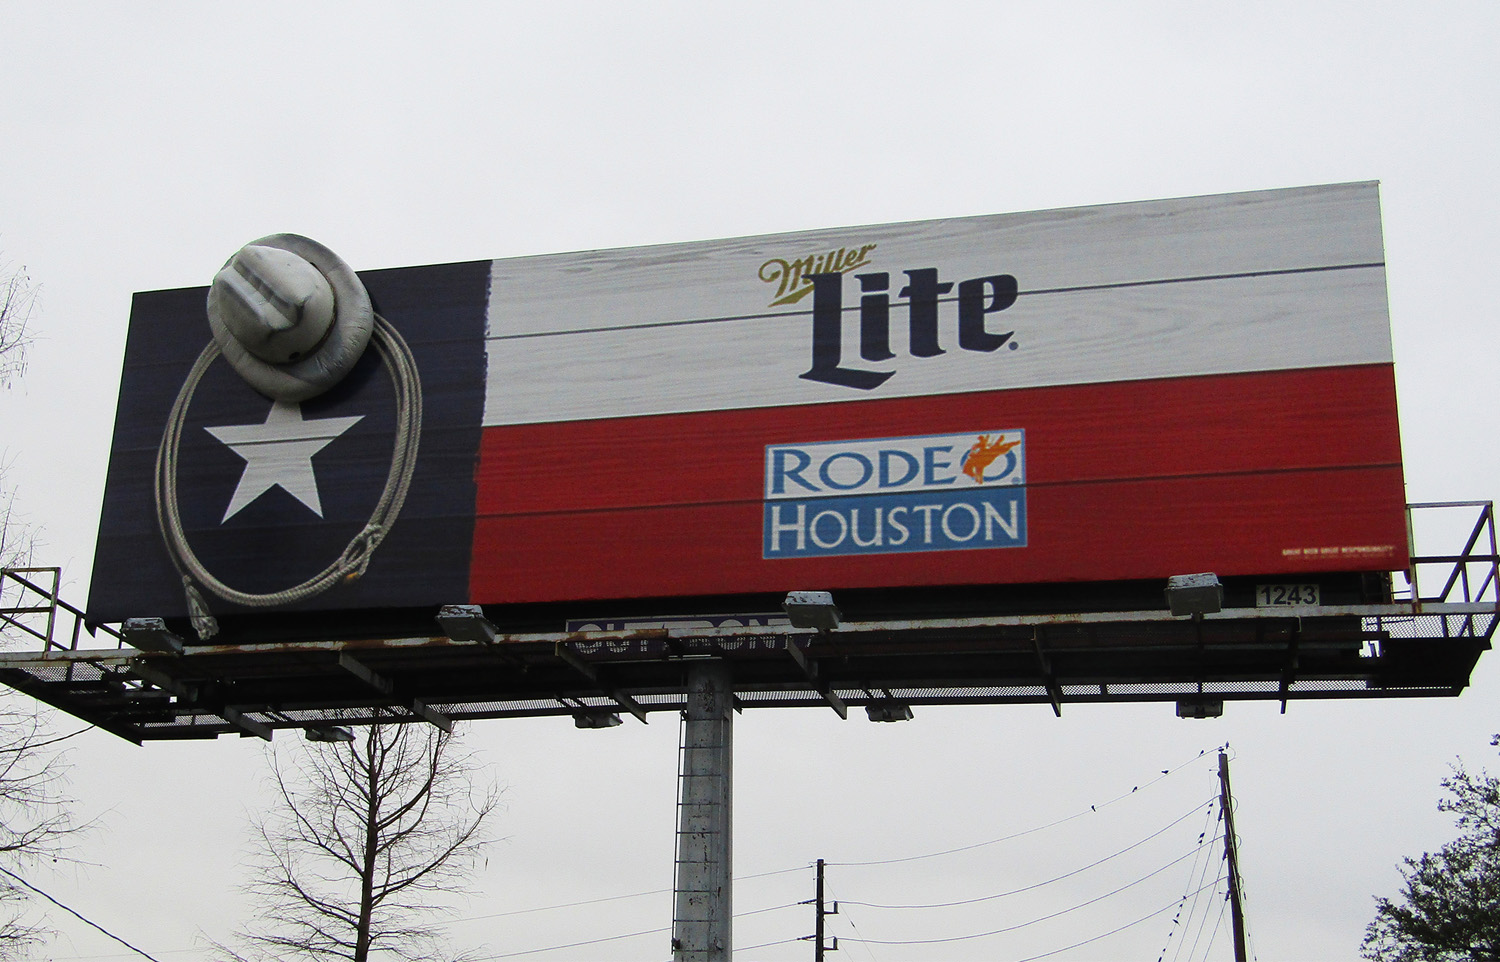 Miller Hat Houston Rodeo 3D Billboard by Soft Signs 3D